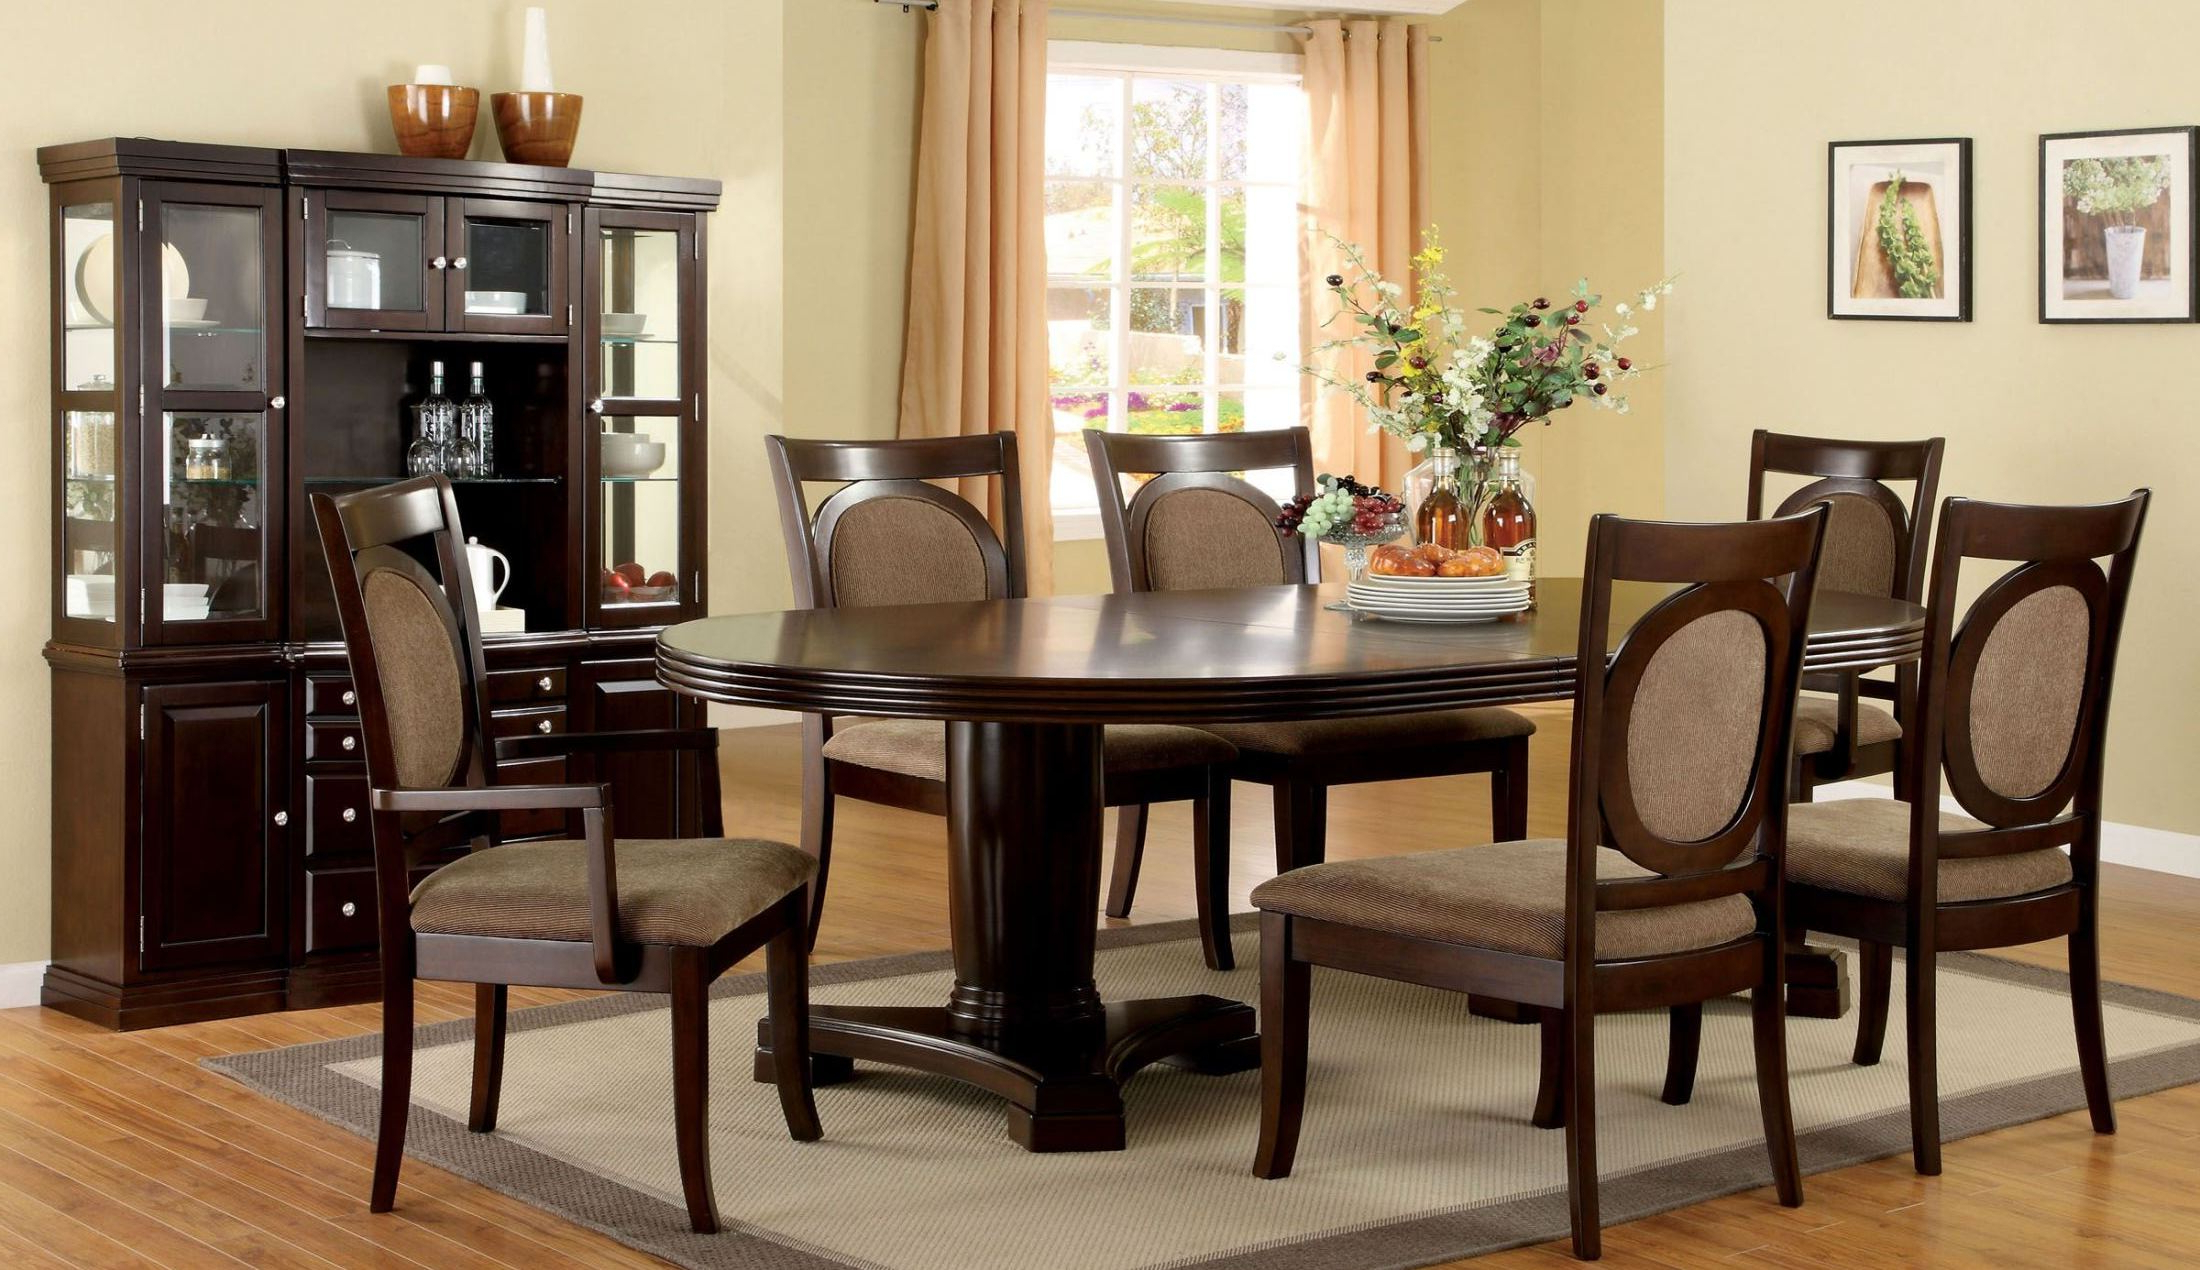 Most Recently Released Evellen 5 Piece Solid Wood Dining Sets (Set Of 5) In Evelyn Walnut Oval Extendable Pedestal Dining Room Set (View 3 of 20)